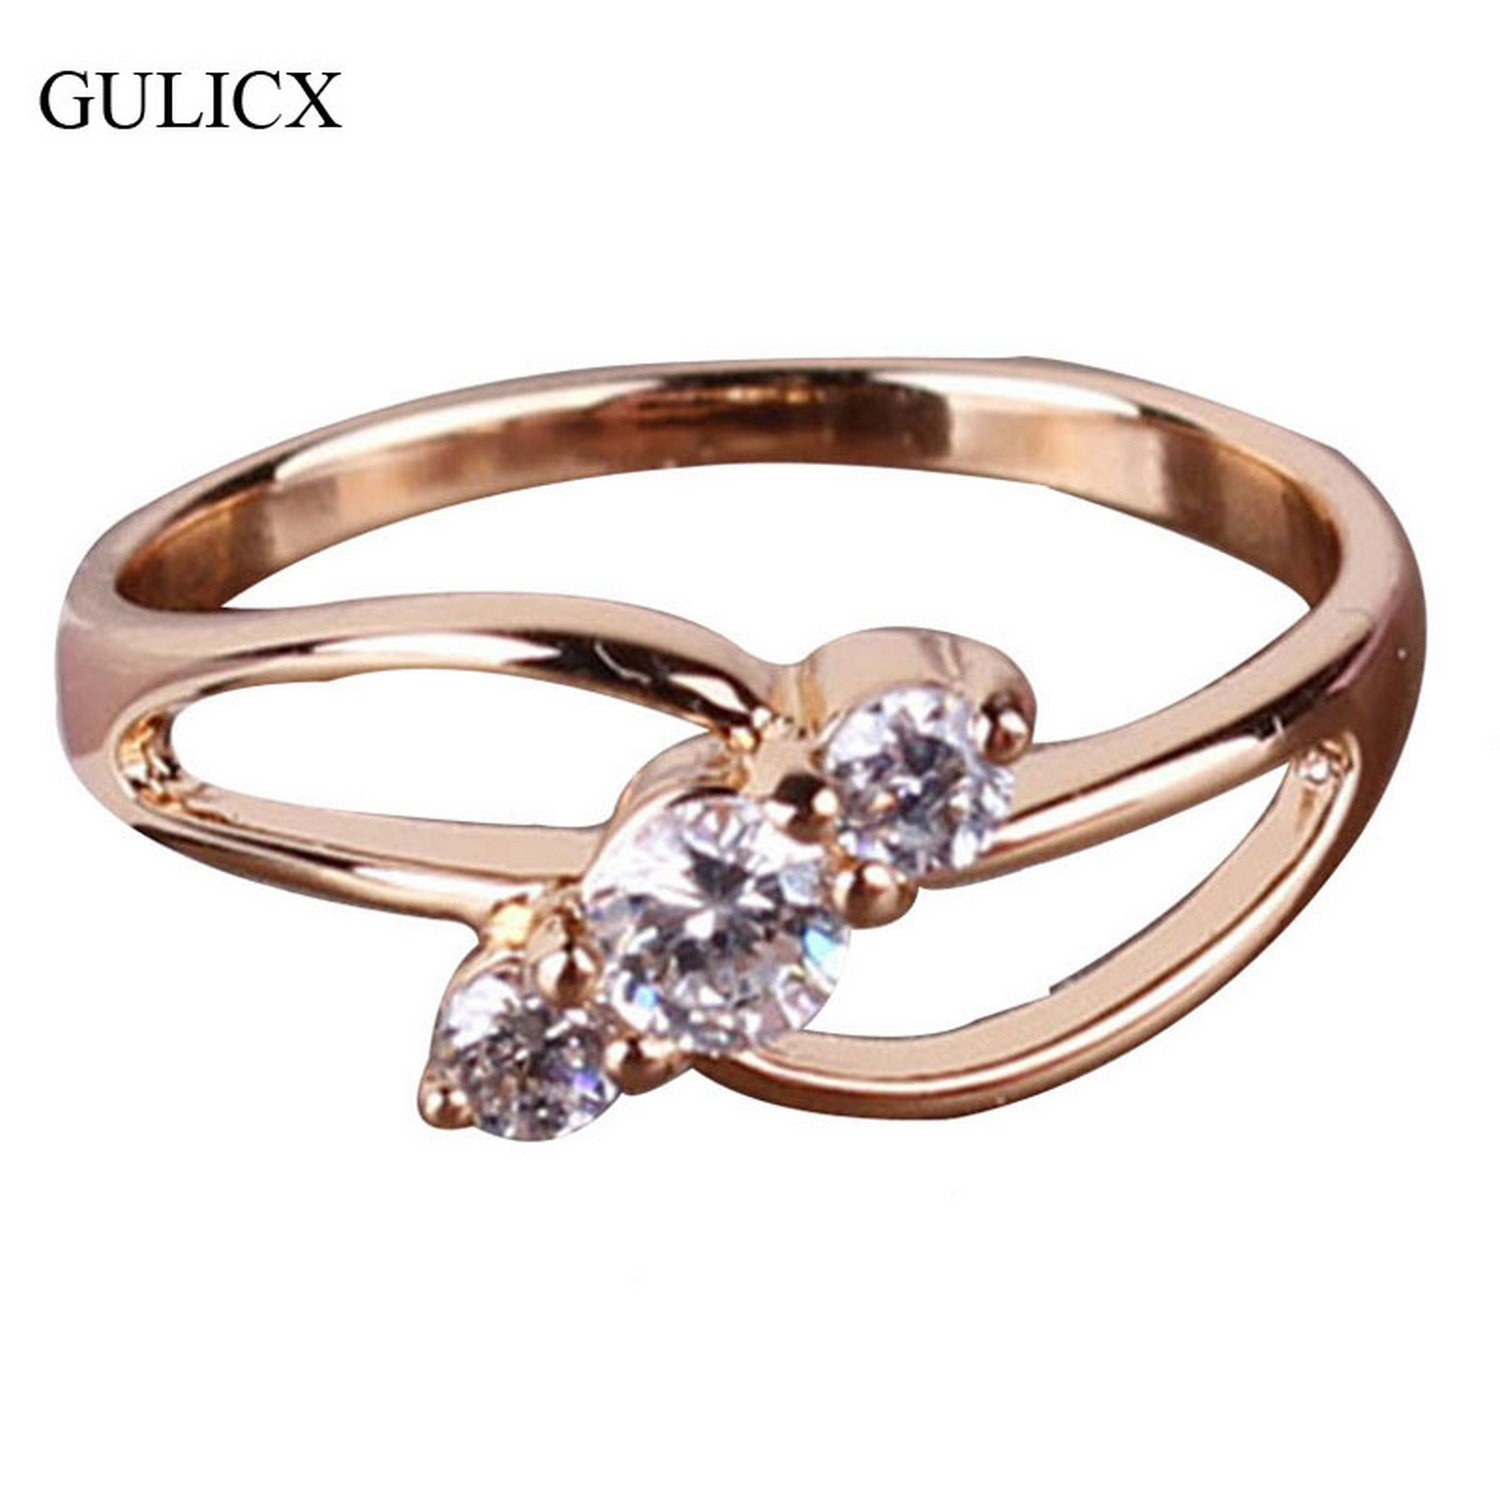 Dudee Jewelry Vintage Ring Gold Plated Finger Ring Round White Crystal Cubic Zirconia Engagement Ring Women Jewerly R029